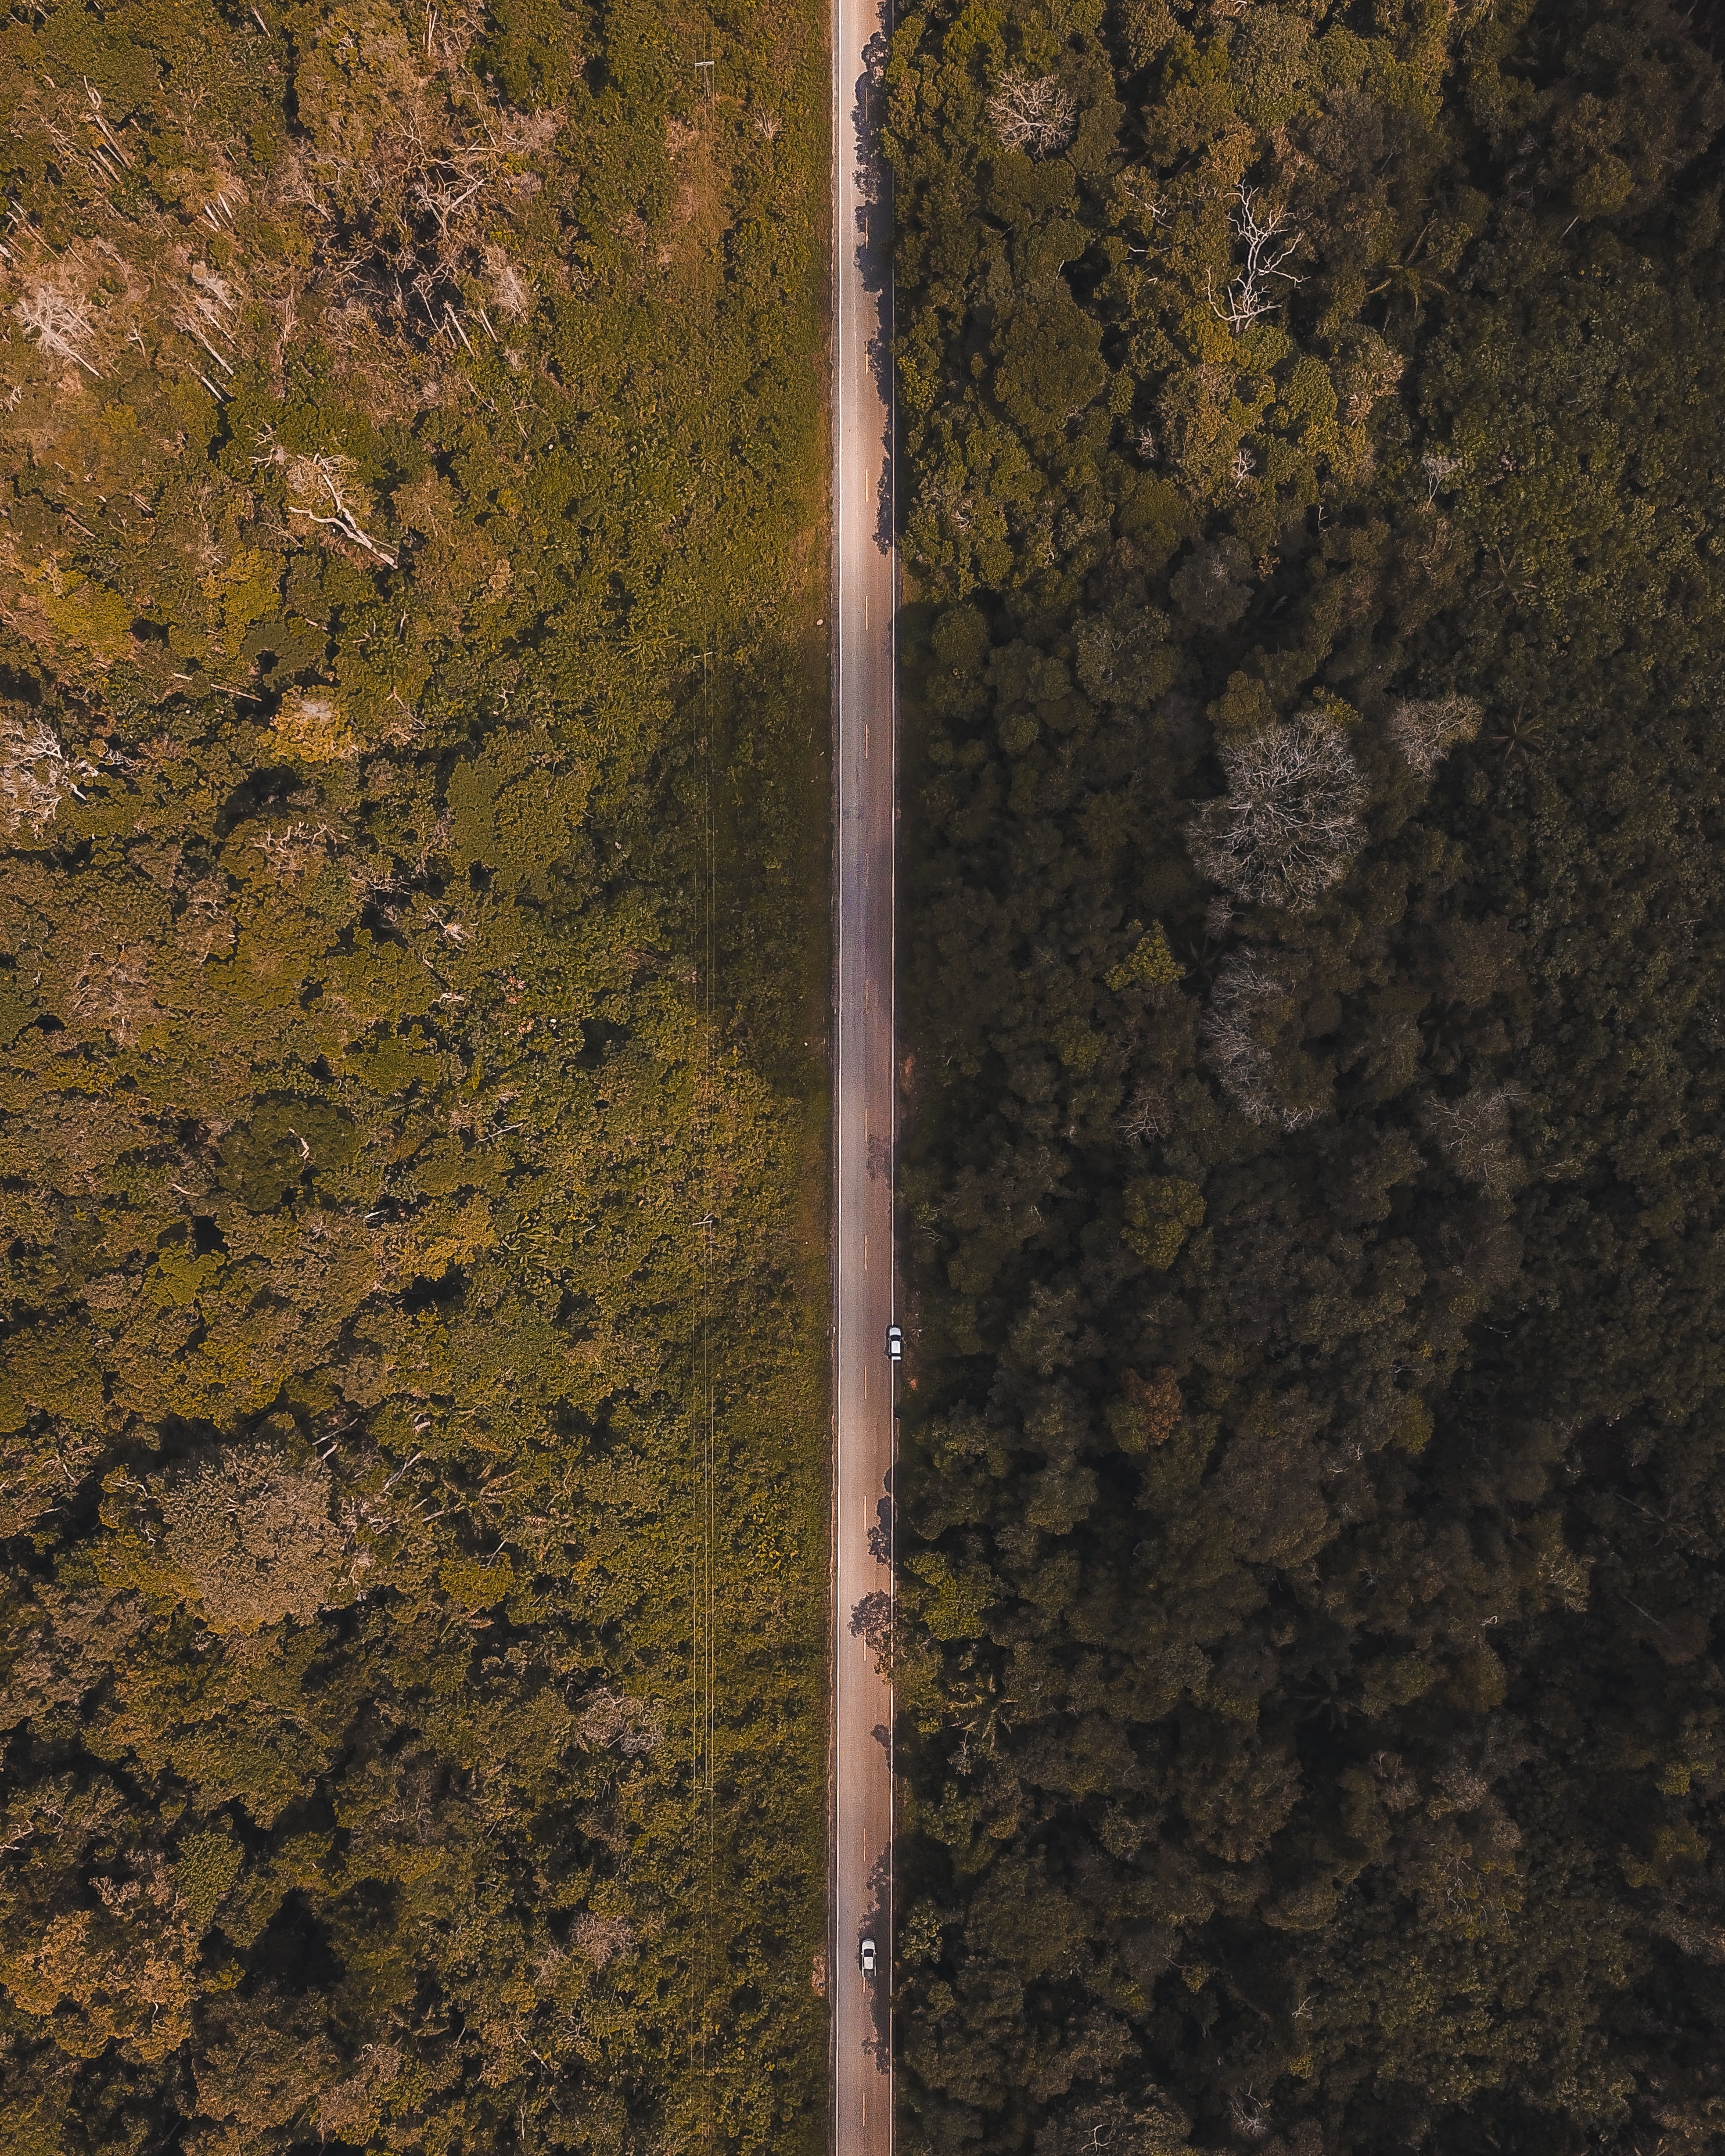 aerial photo of straight line road in the middle of forest